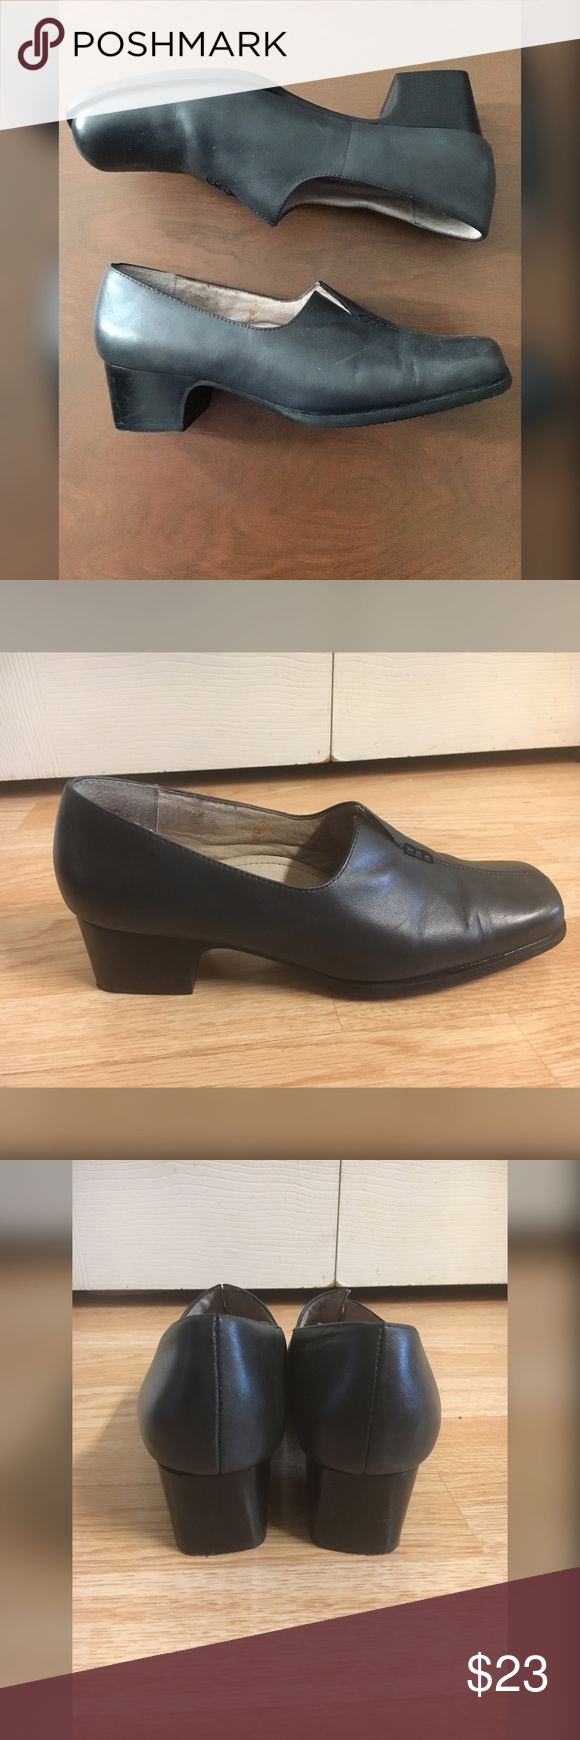 """Strictly Comfort Gray Leather Block Heel Loafers Designer: Strictly Comfort Condition: Worn once, light heel wear Size: 9M Content: Leather upper, balance man-made materials Heel: 1 7/8"""" Width: 3 1/8"""" Insole: `10 1/4"""" *slight bleeding inside from black tights worn with shoes * see pics Strictly Comfort Shoes Heels"""